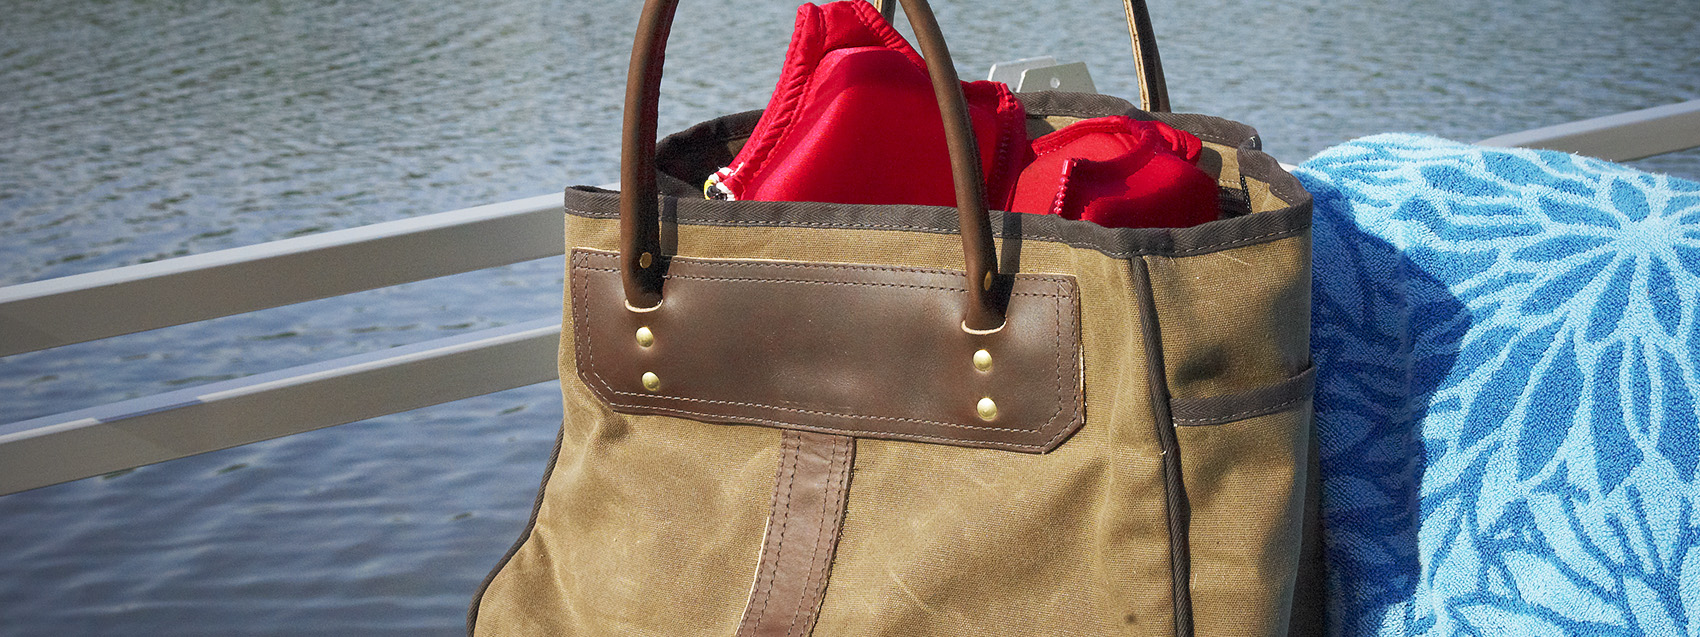 totes-banner-outdoor-102.jpg